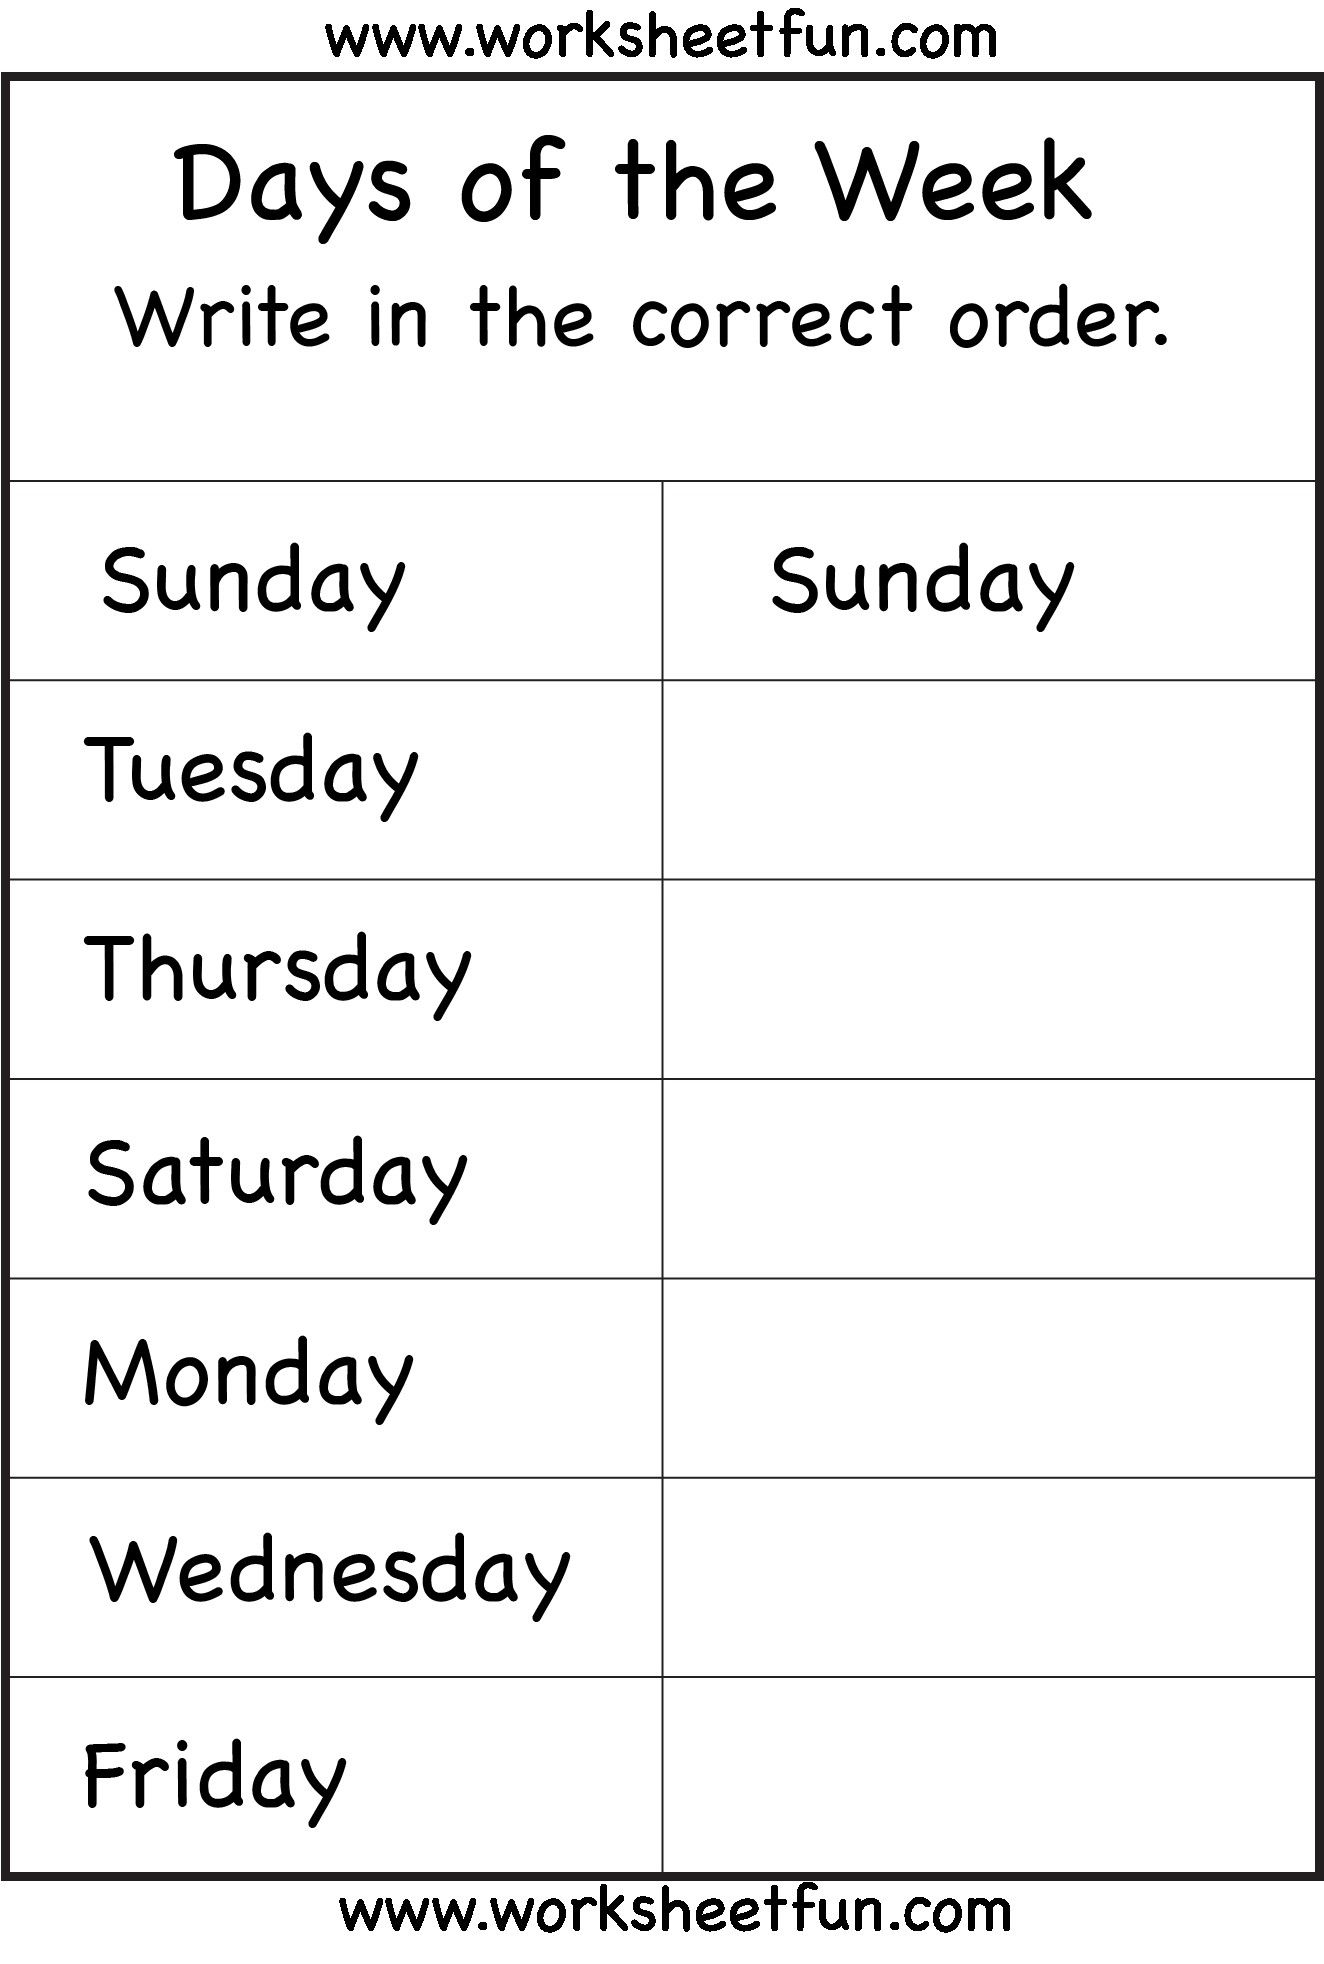 Grade 1 English Worksheets Articles Refrence Days Of The Week